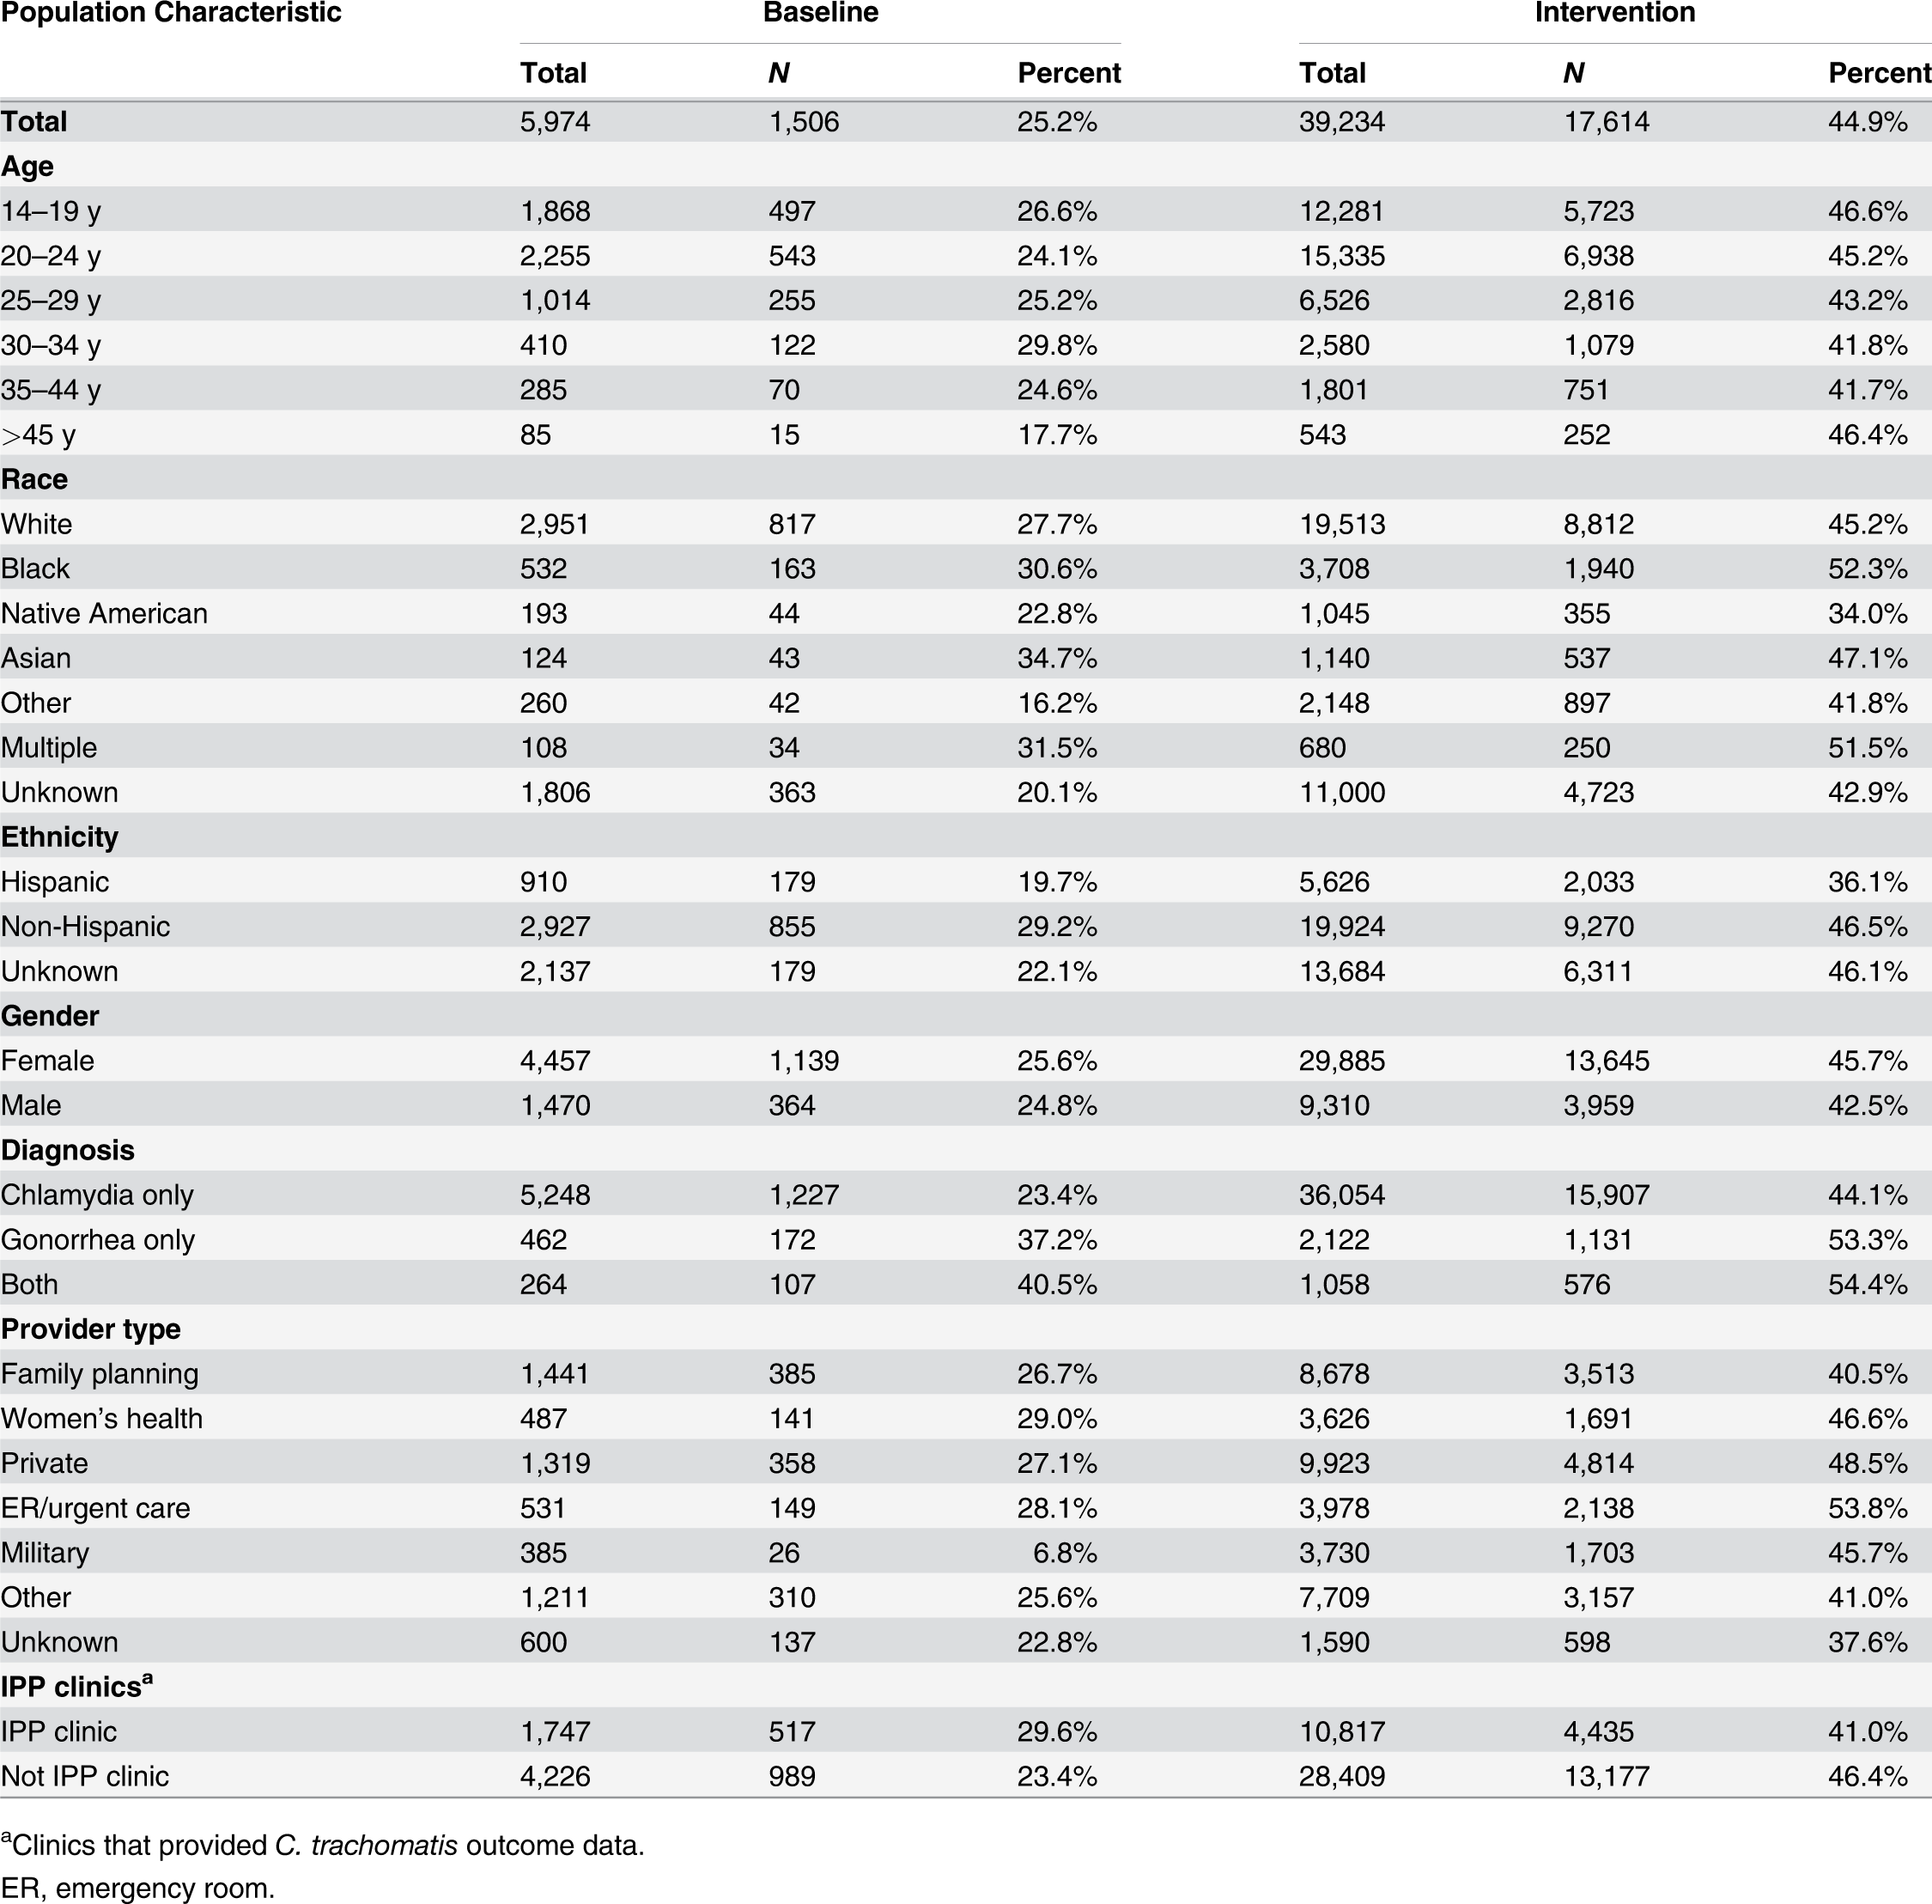 Receipt of public health partner services within subgroups of patients during baseline and intervention periods.